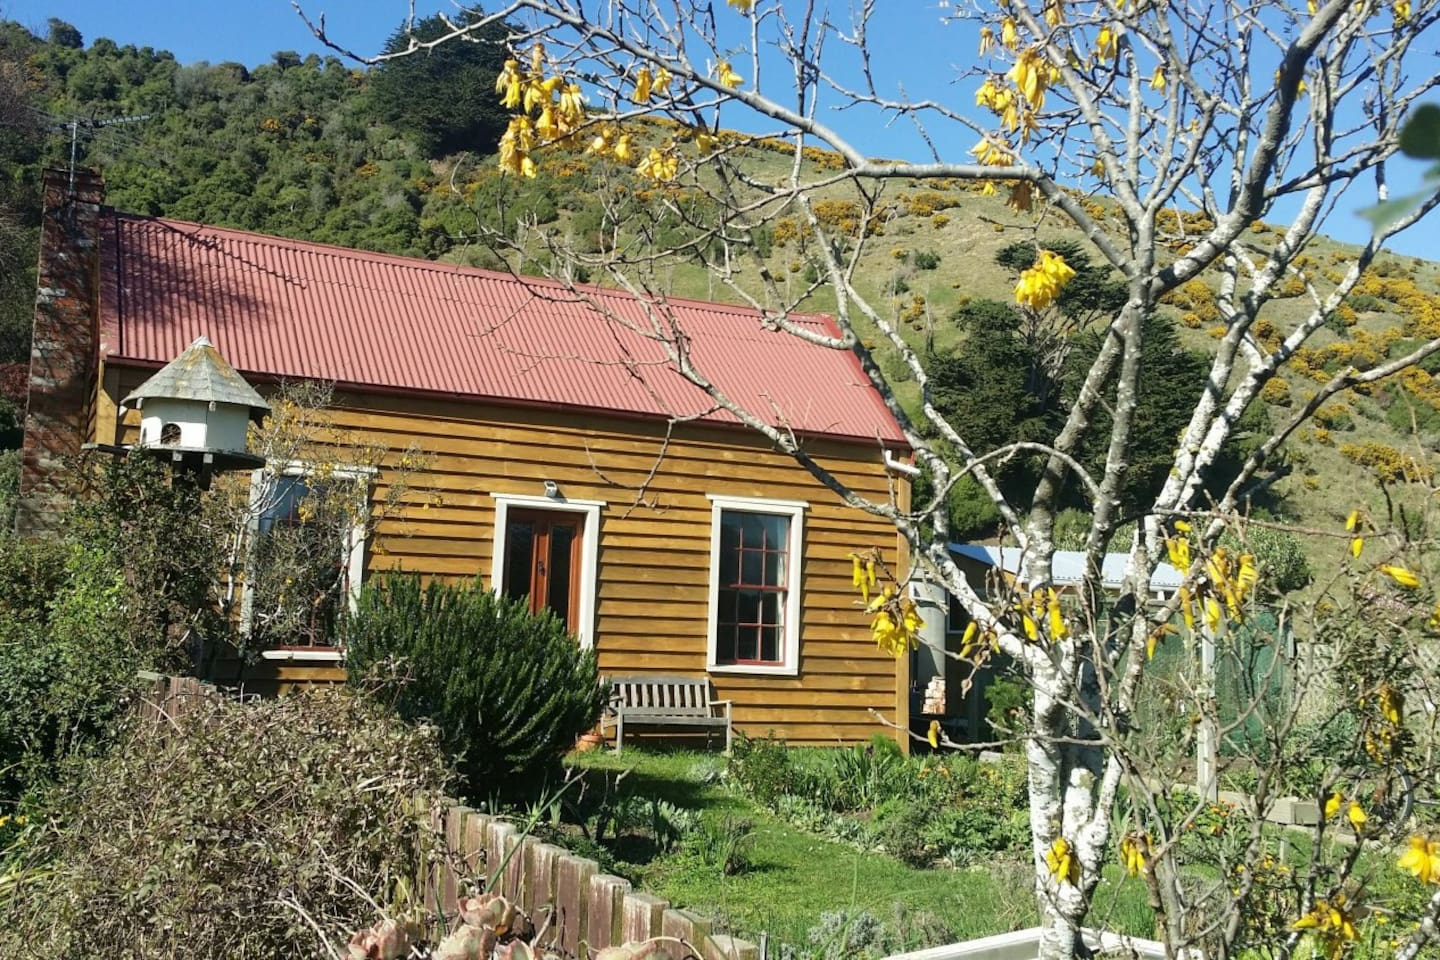 Welcome to this little oasis of peace and calm. Historic cottage with modern facilities. Warm and sunny.  So close to local attractions. Enjoy your rest while planning your adventure around the iconic Otago Peninsula.